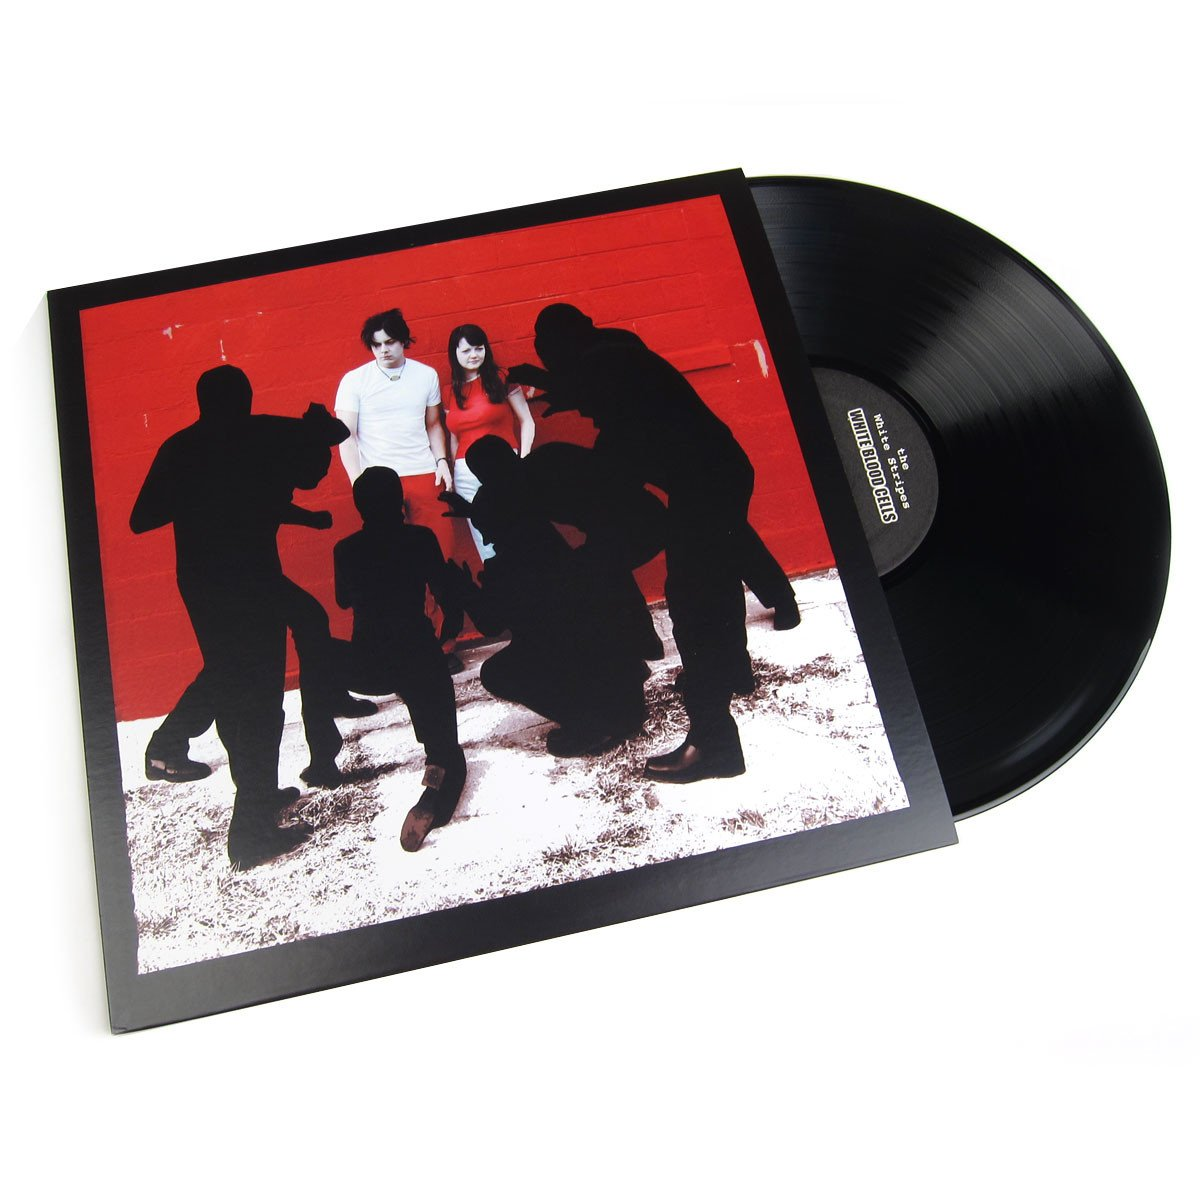 The White Stripes: White Blood Cells (180g) Vinyl LP